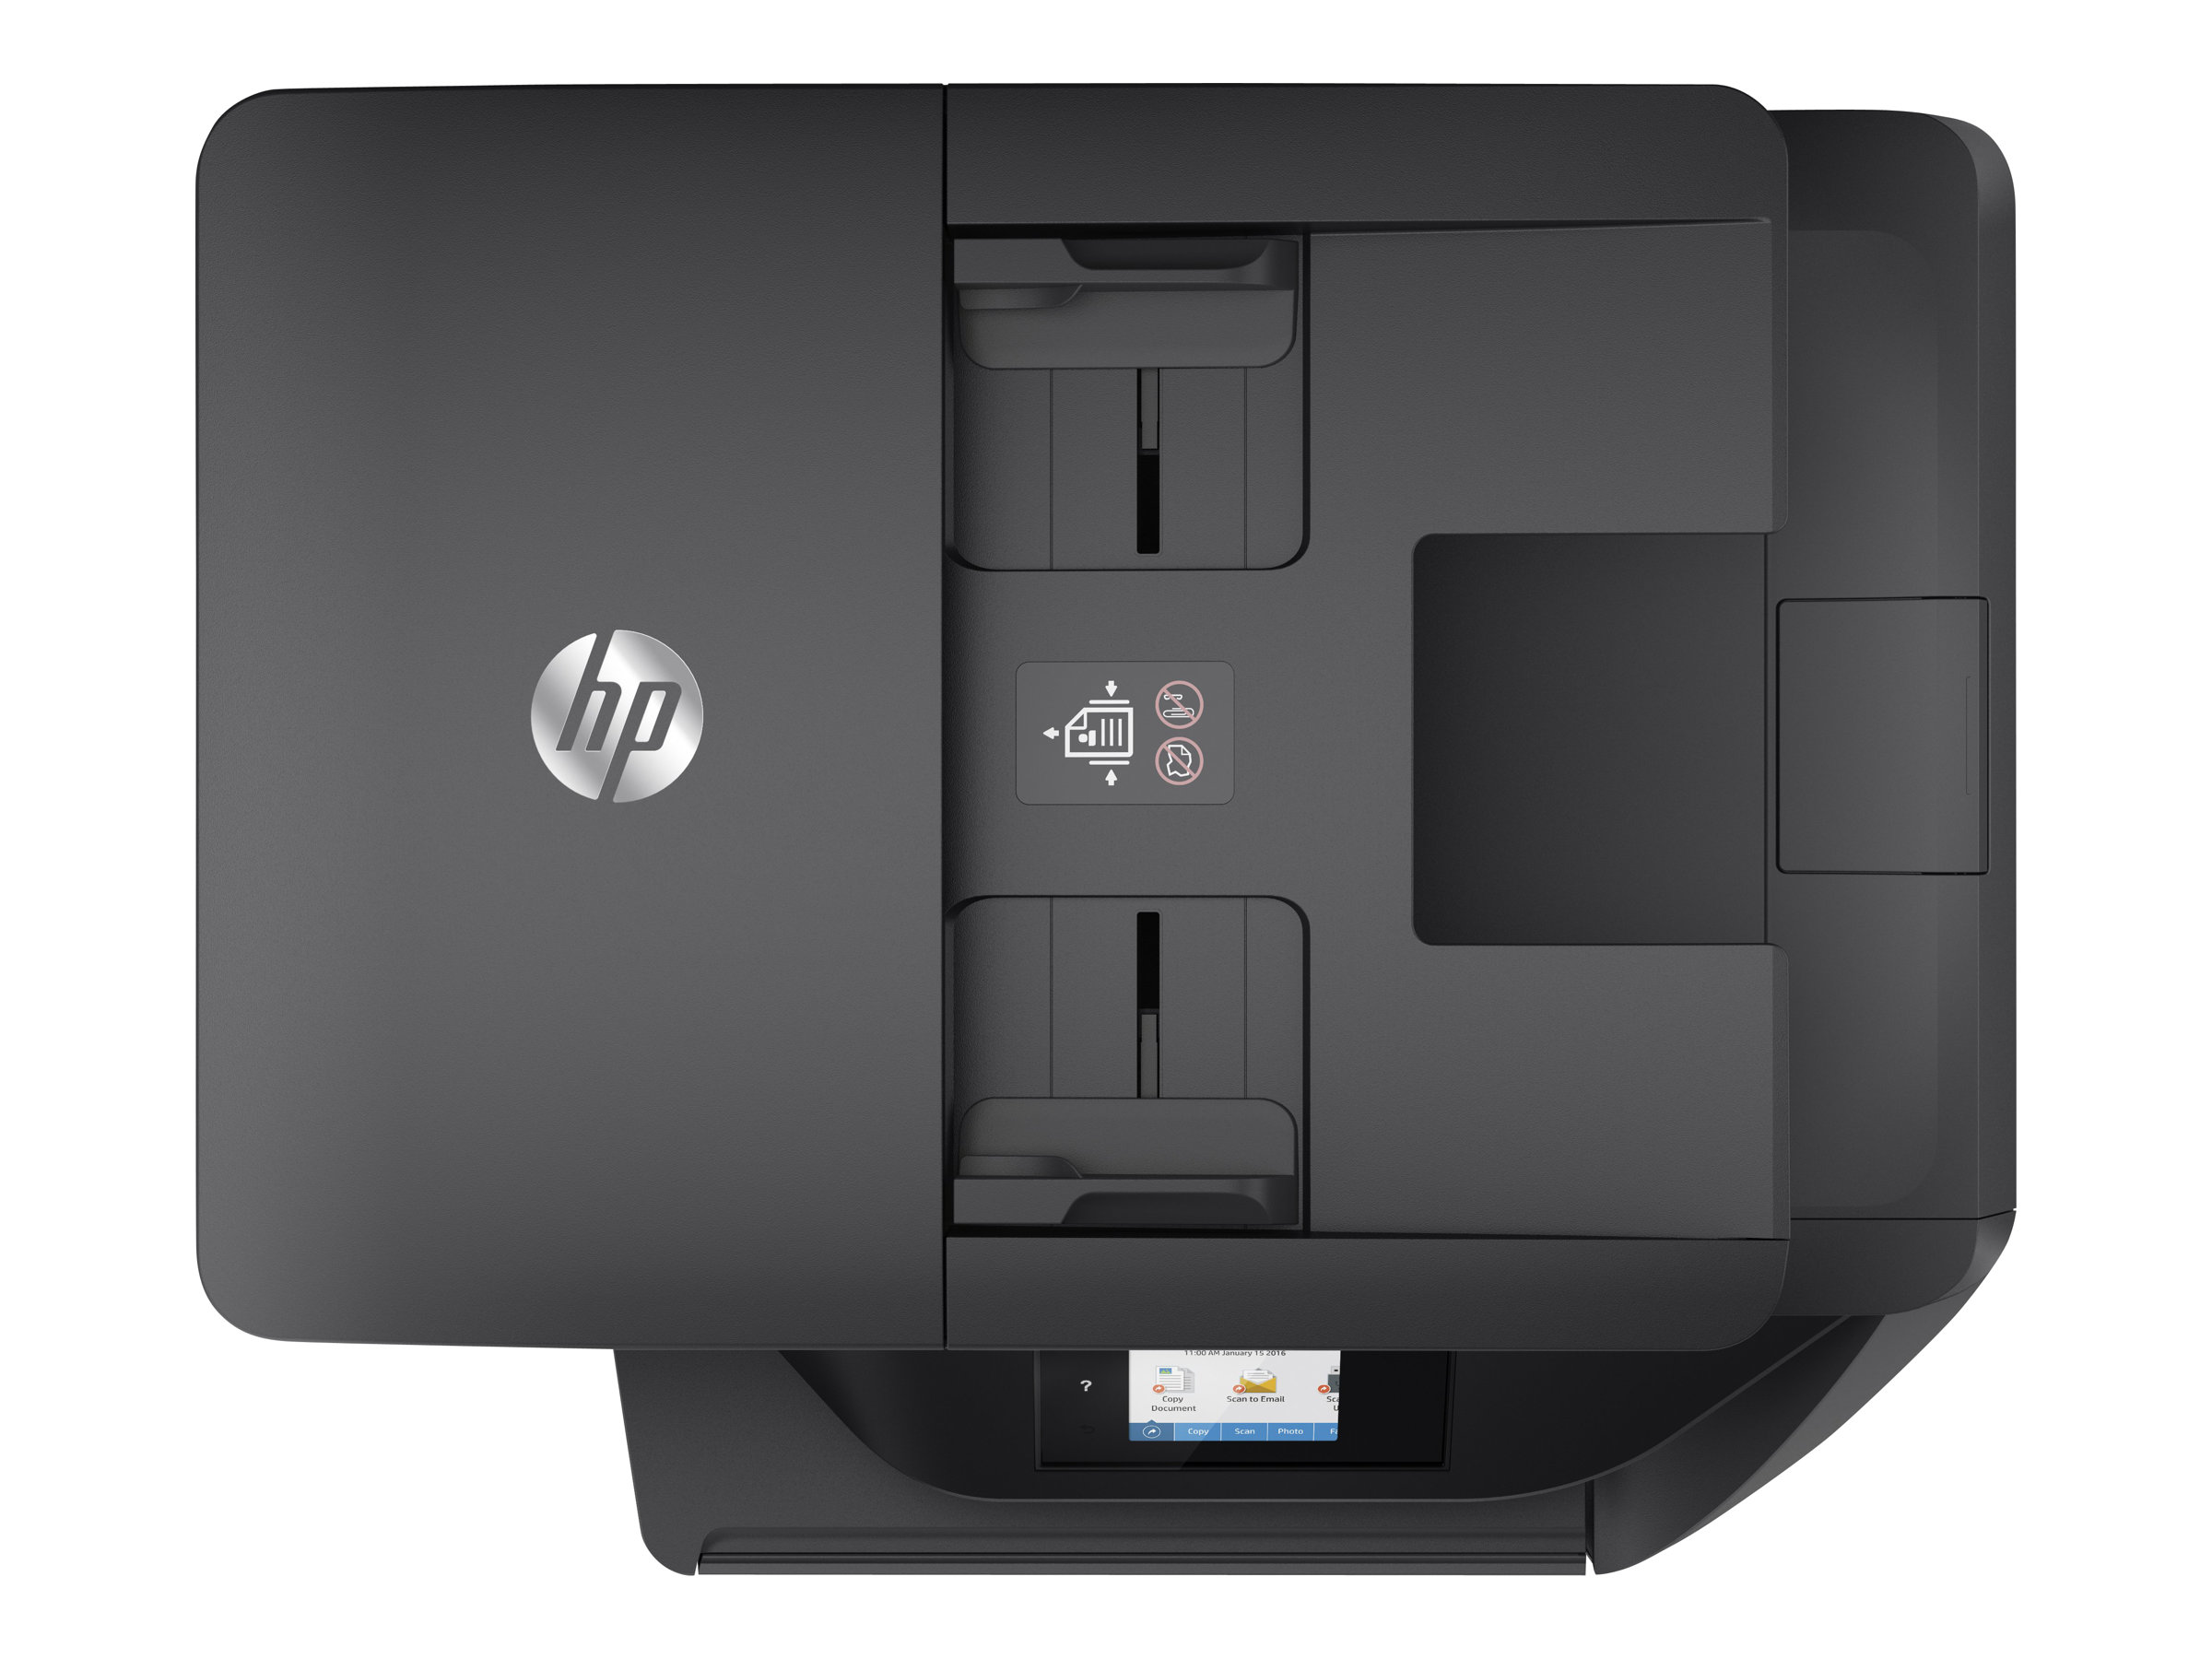 Imprimante HP Color Officejet Pro 6960 All-in-One vue de dessus